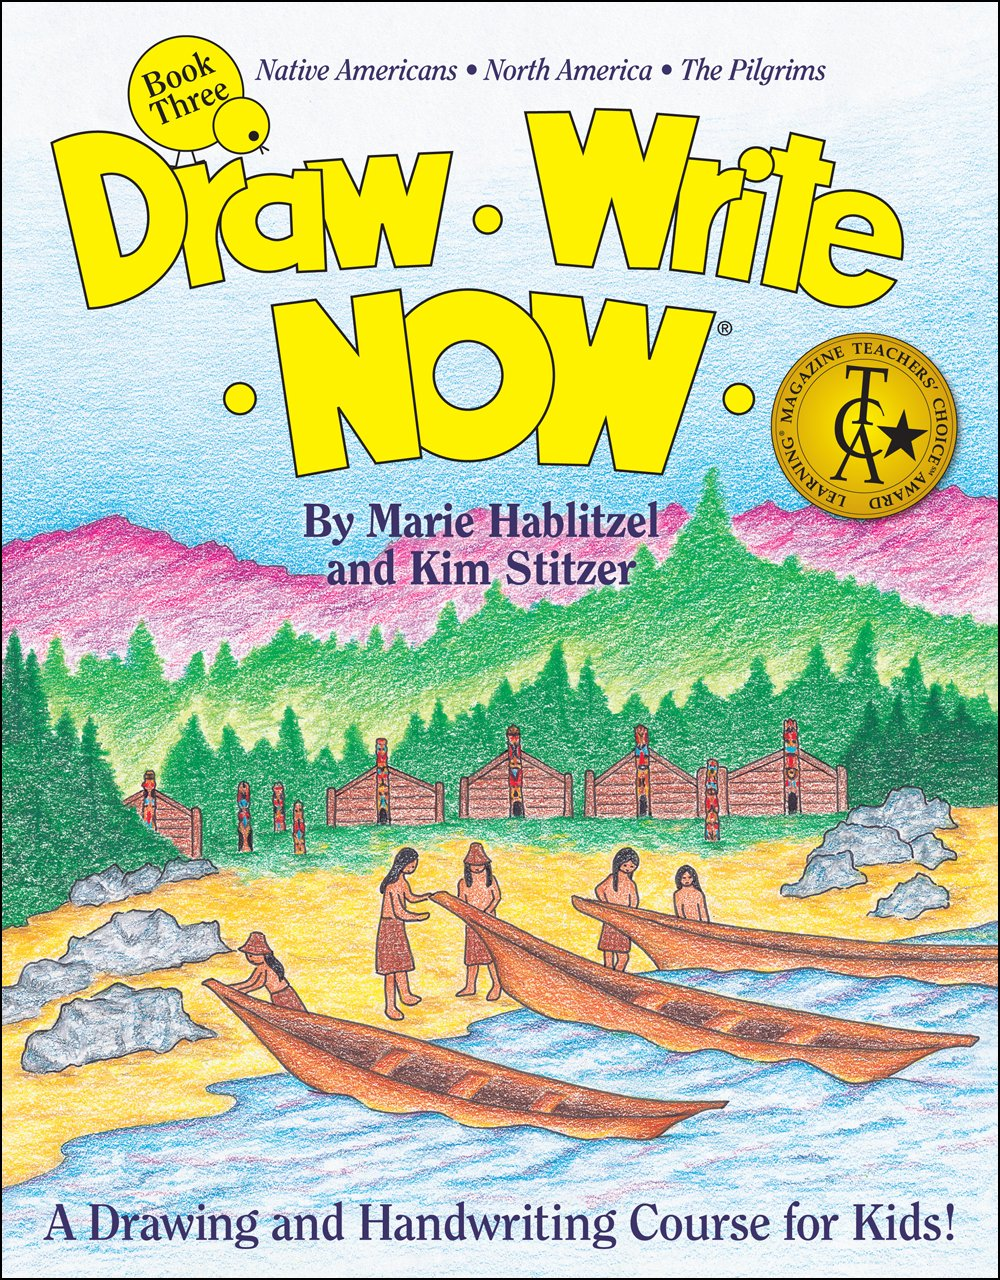 Draw Write Now Book 3: Native Americans, North America, The Pilgrims (Used-Like New) - Little Green Schoolhouse Books